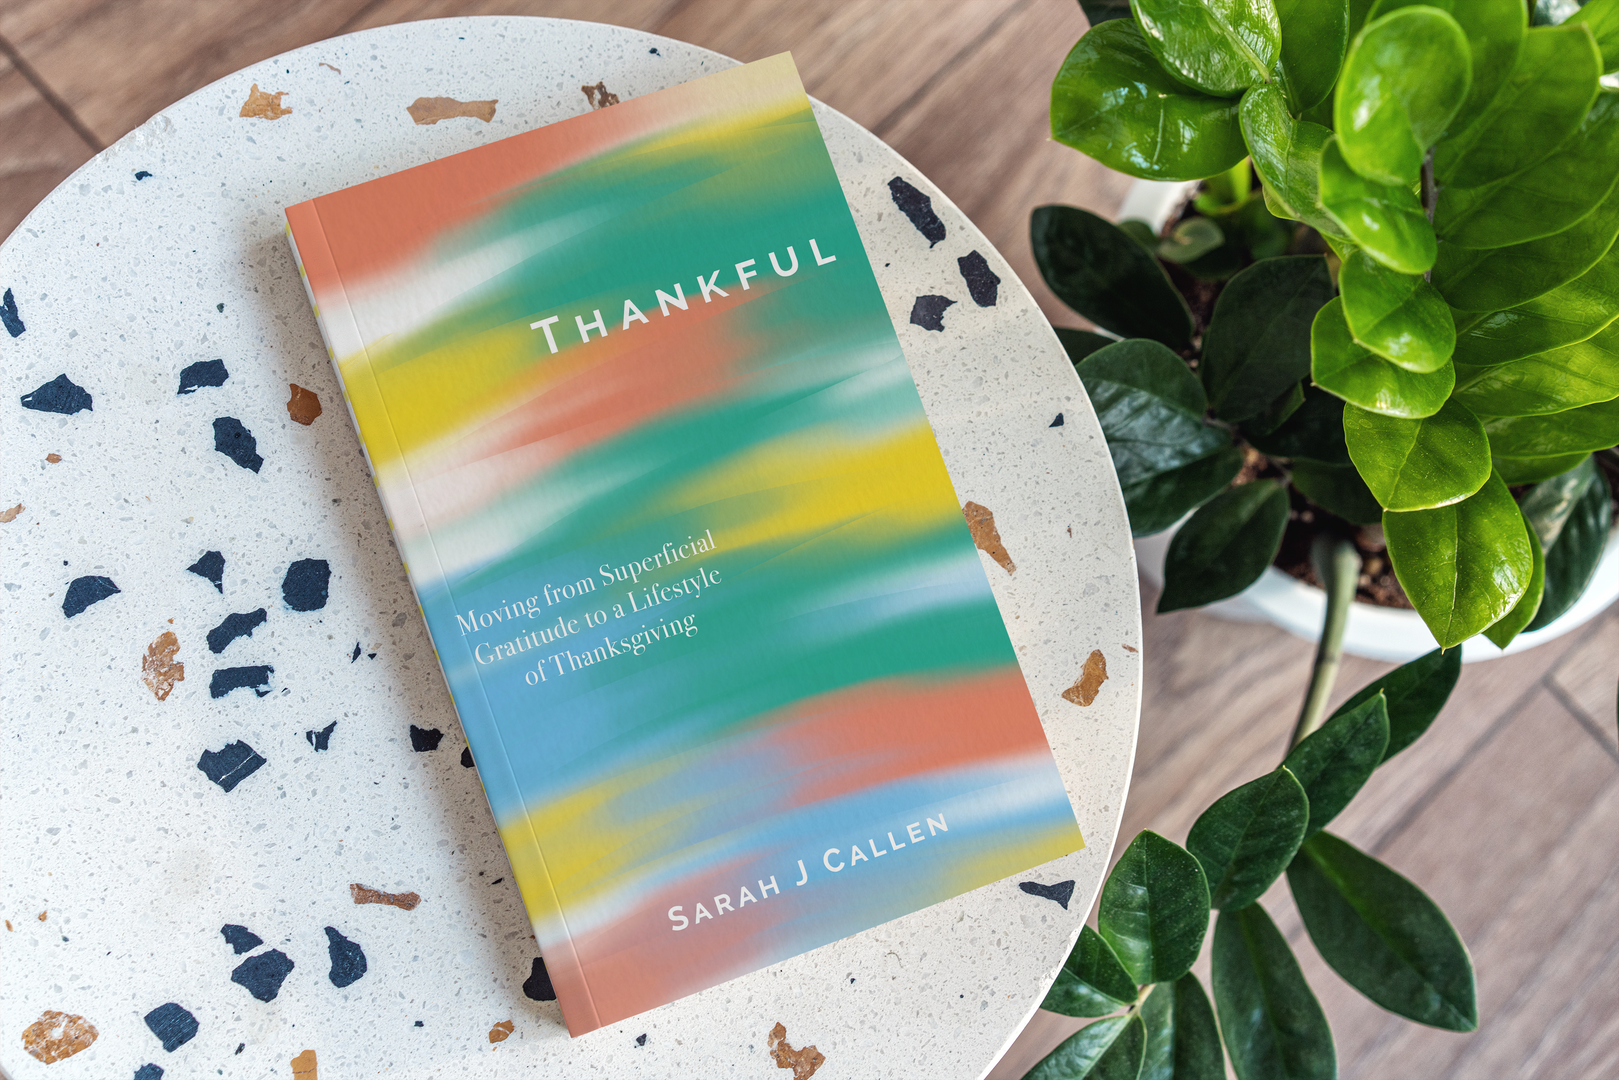 Thankful: Moving from Superficial Gratitude to a Lifestyle of Thanksgiving